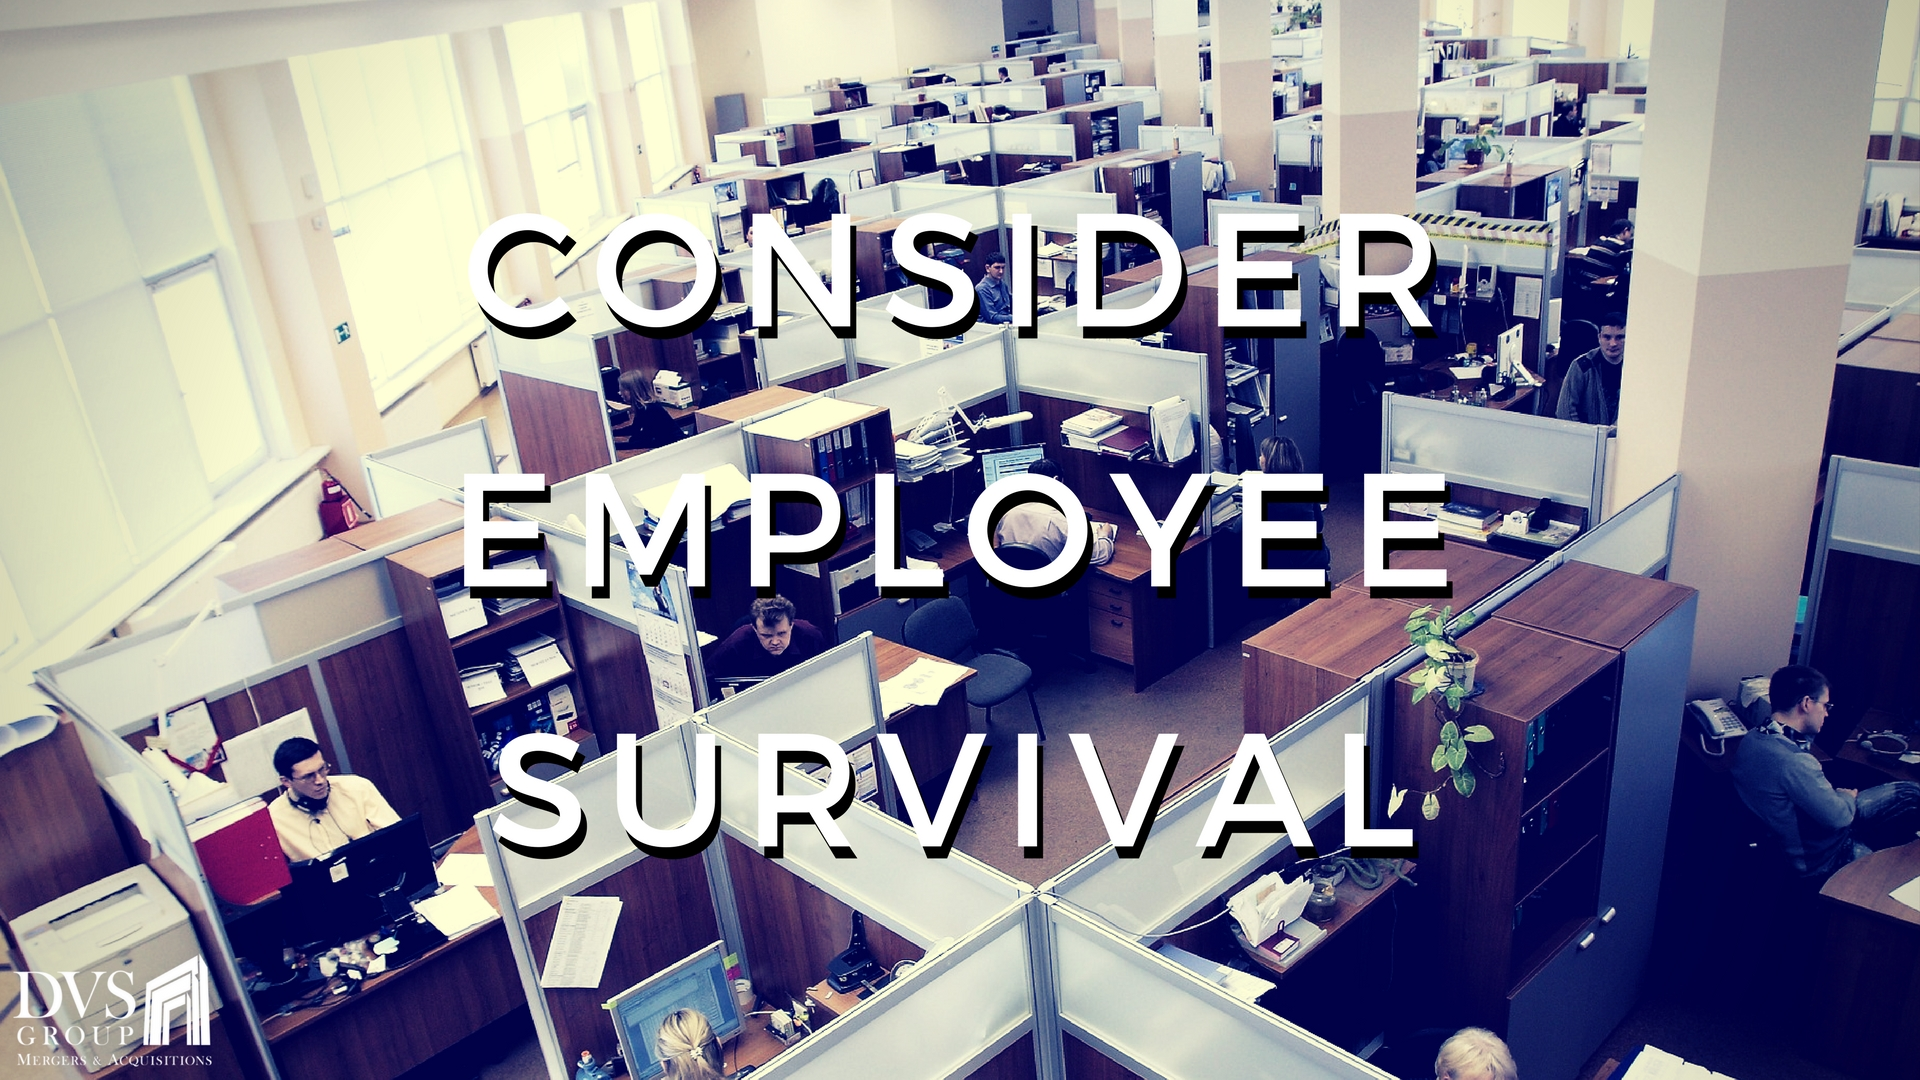 3. Consider Employee Survival